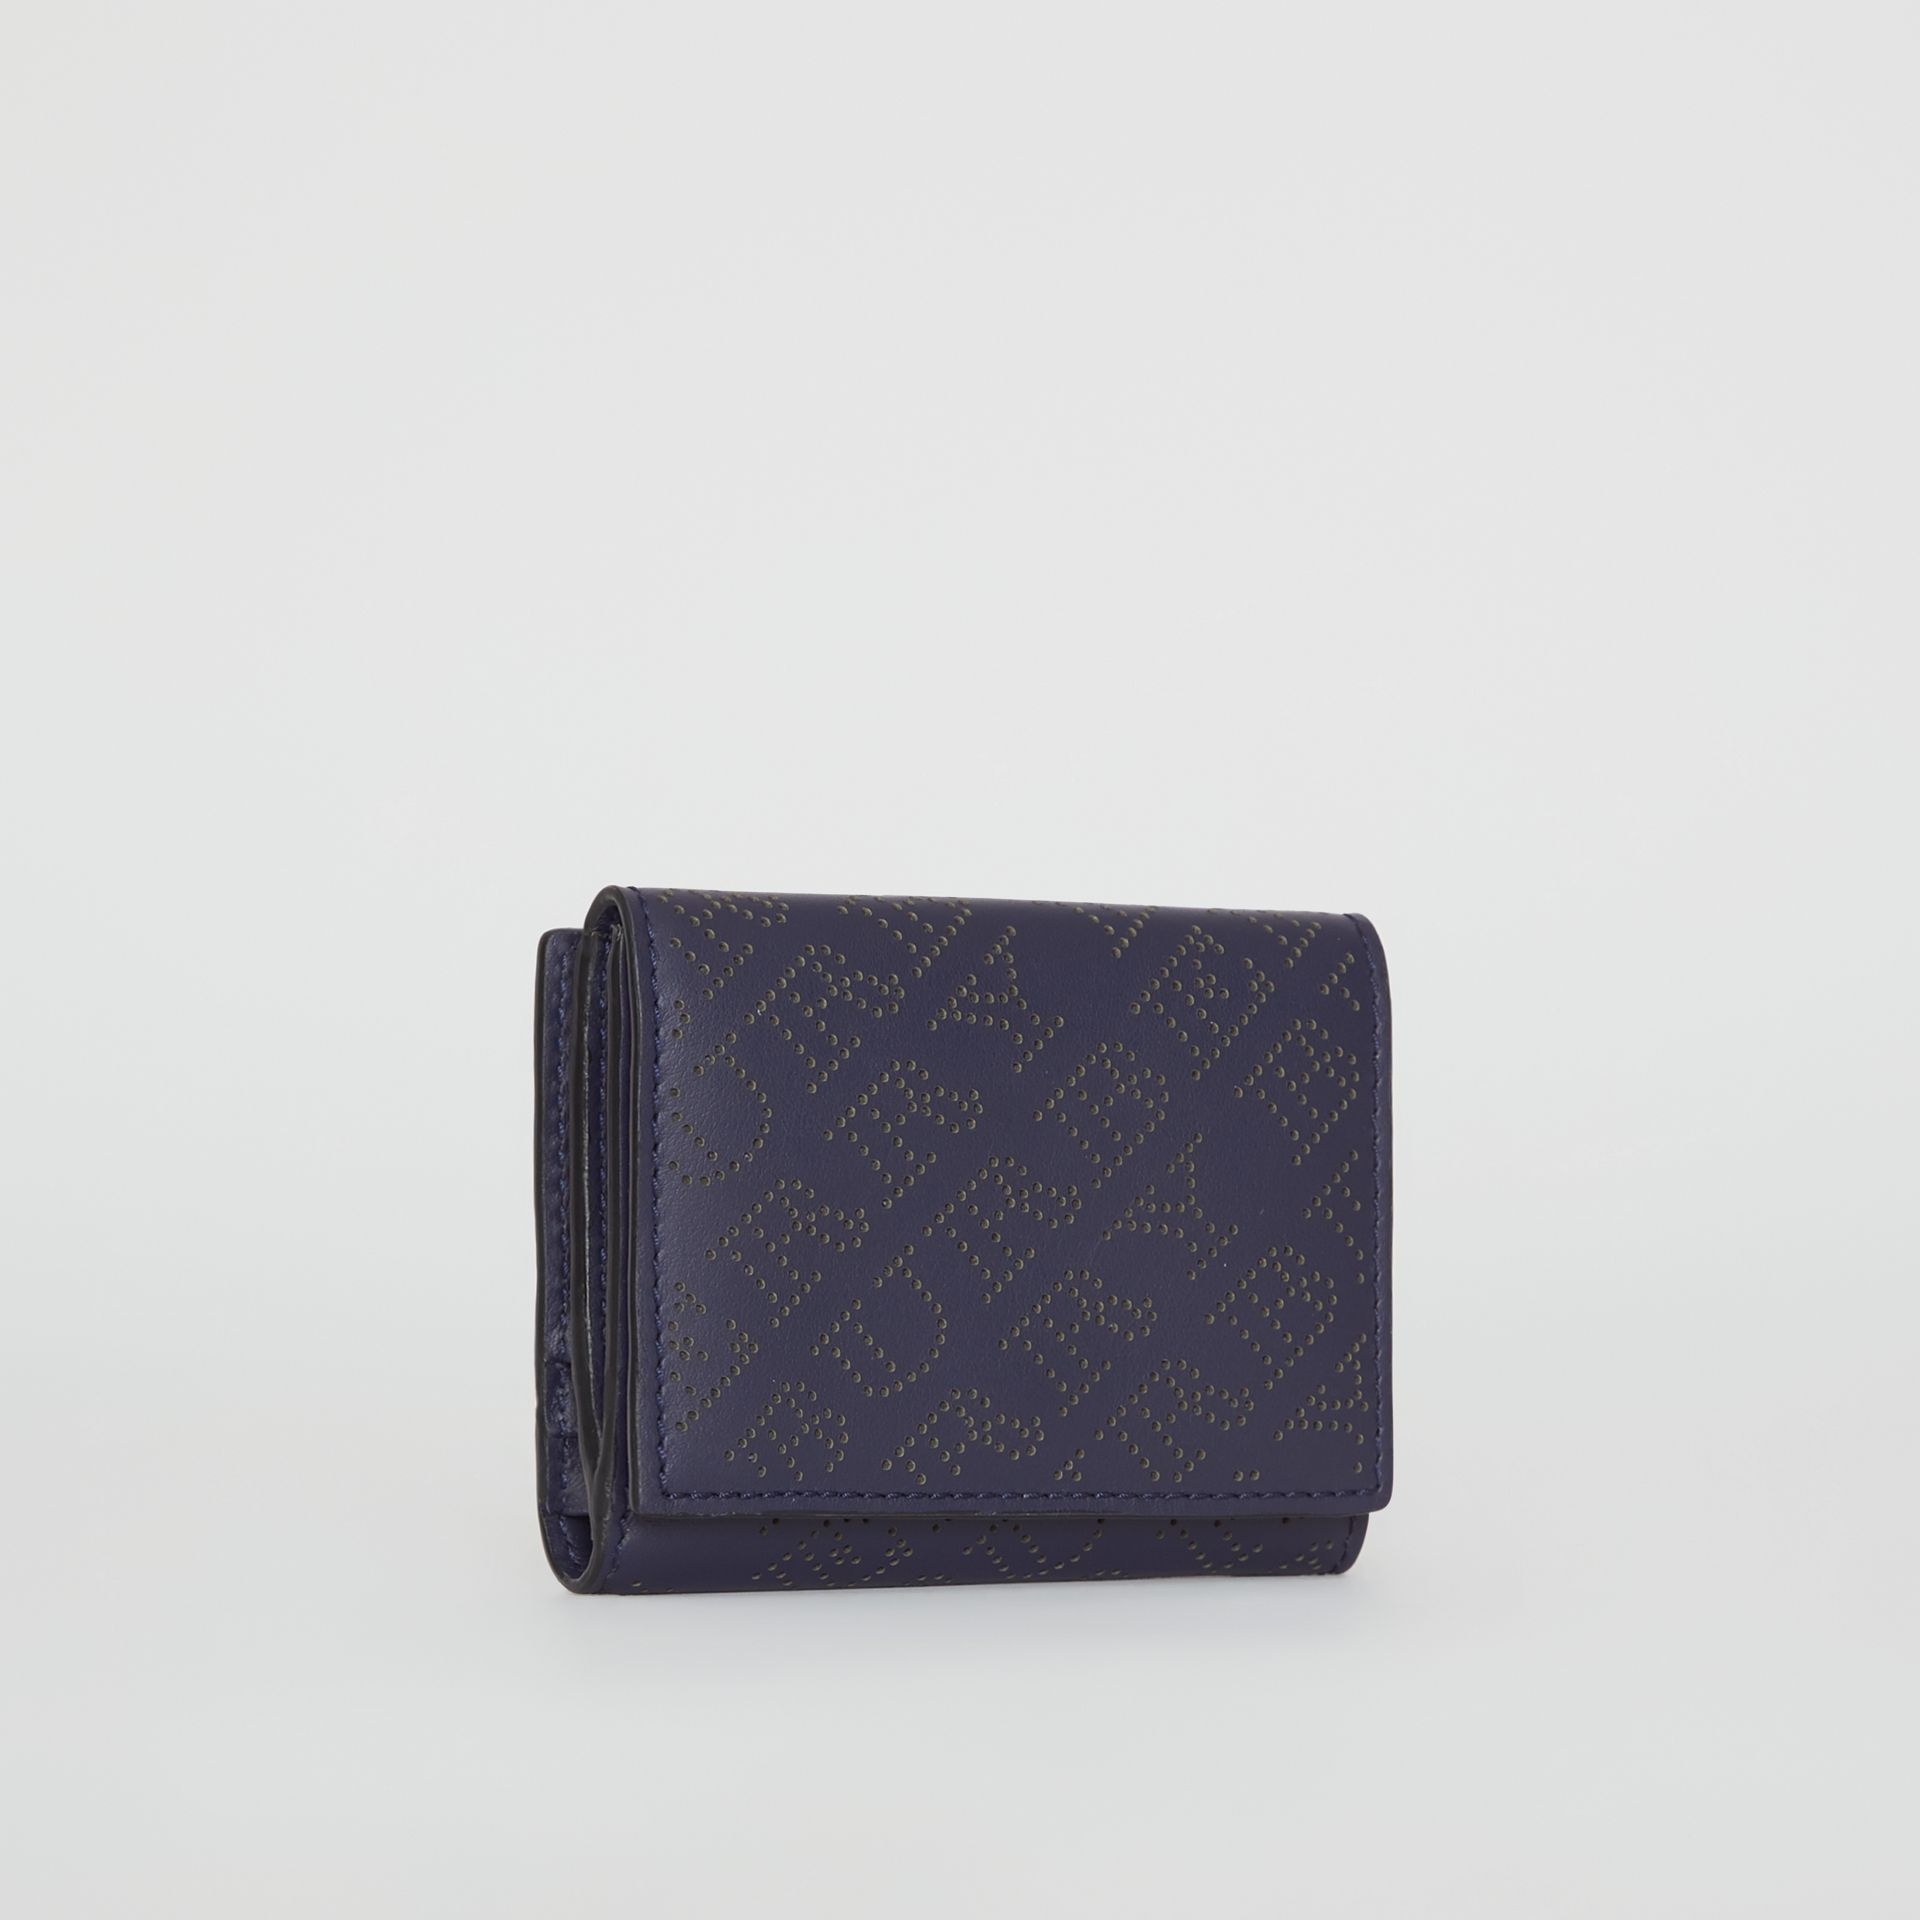 Small Perforated Logo Leather Wallet in Navy - Women | Burberry - gallery image 4